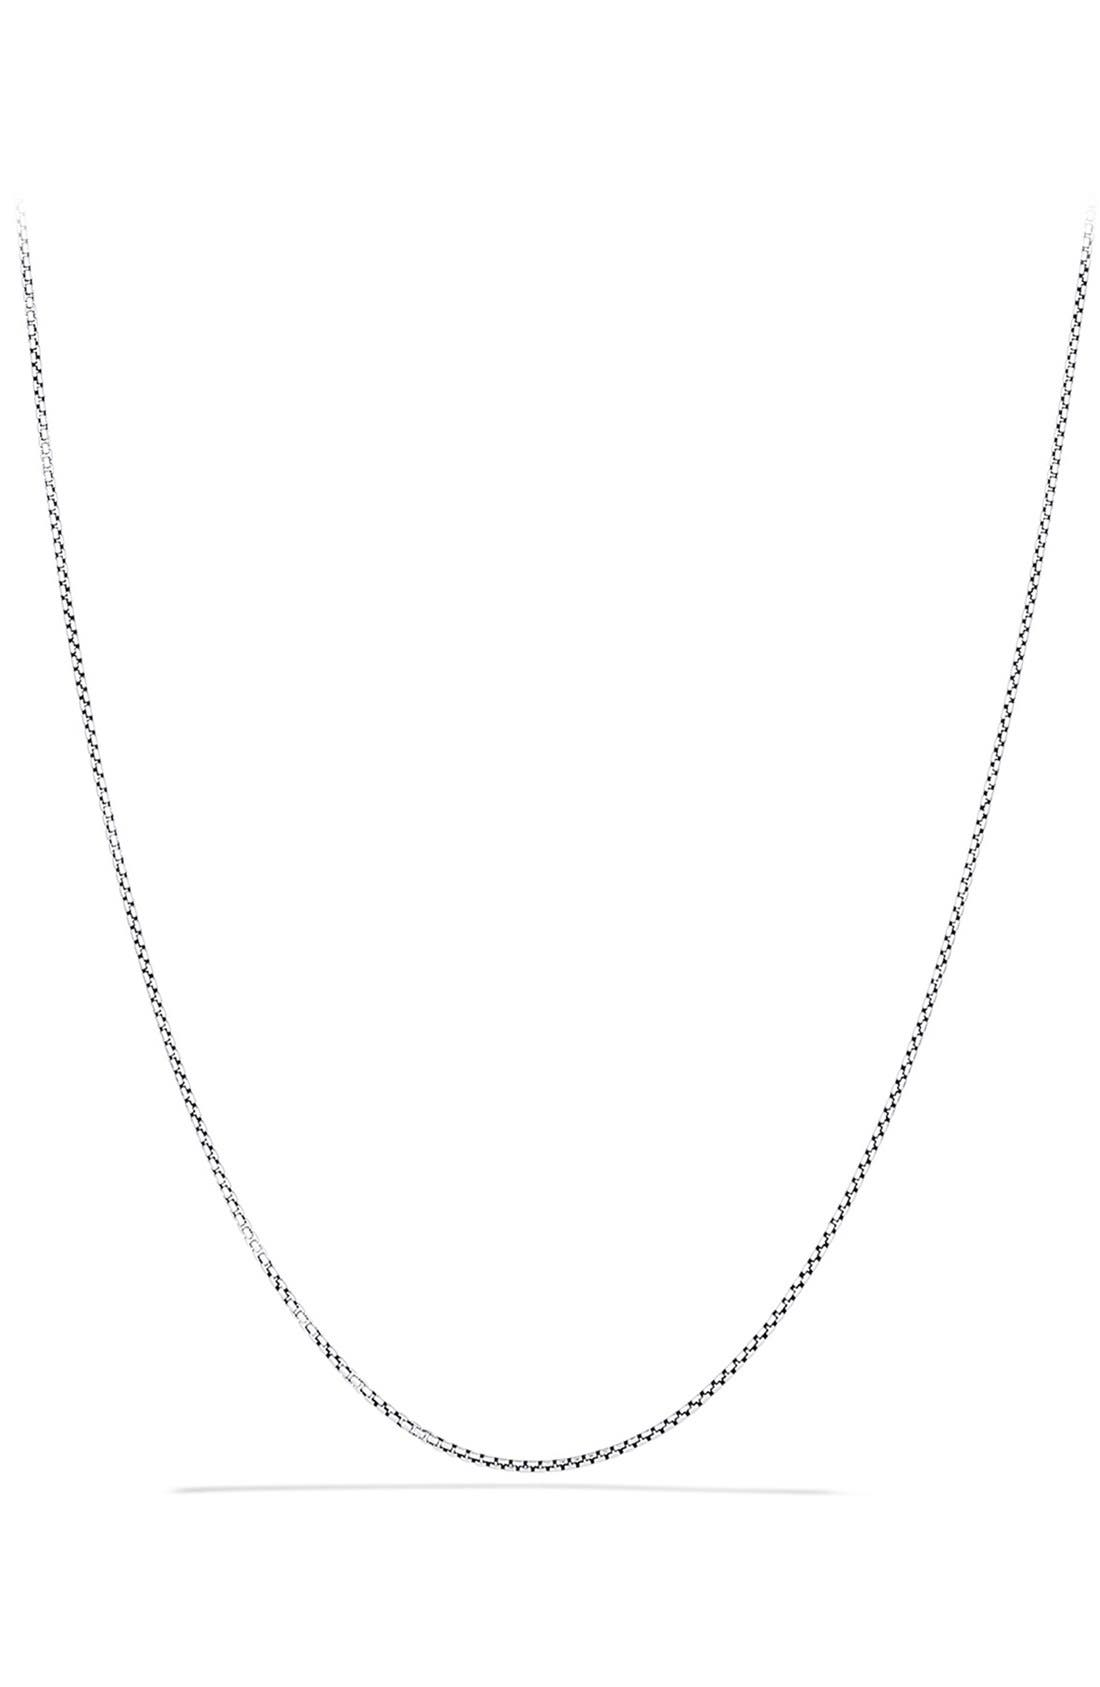 'Chain' Baby Box Chain Necklace,                         Main,                         color, Two Tone